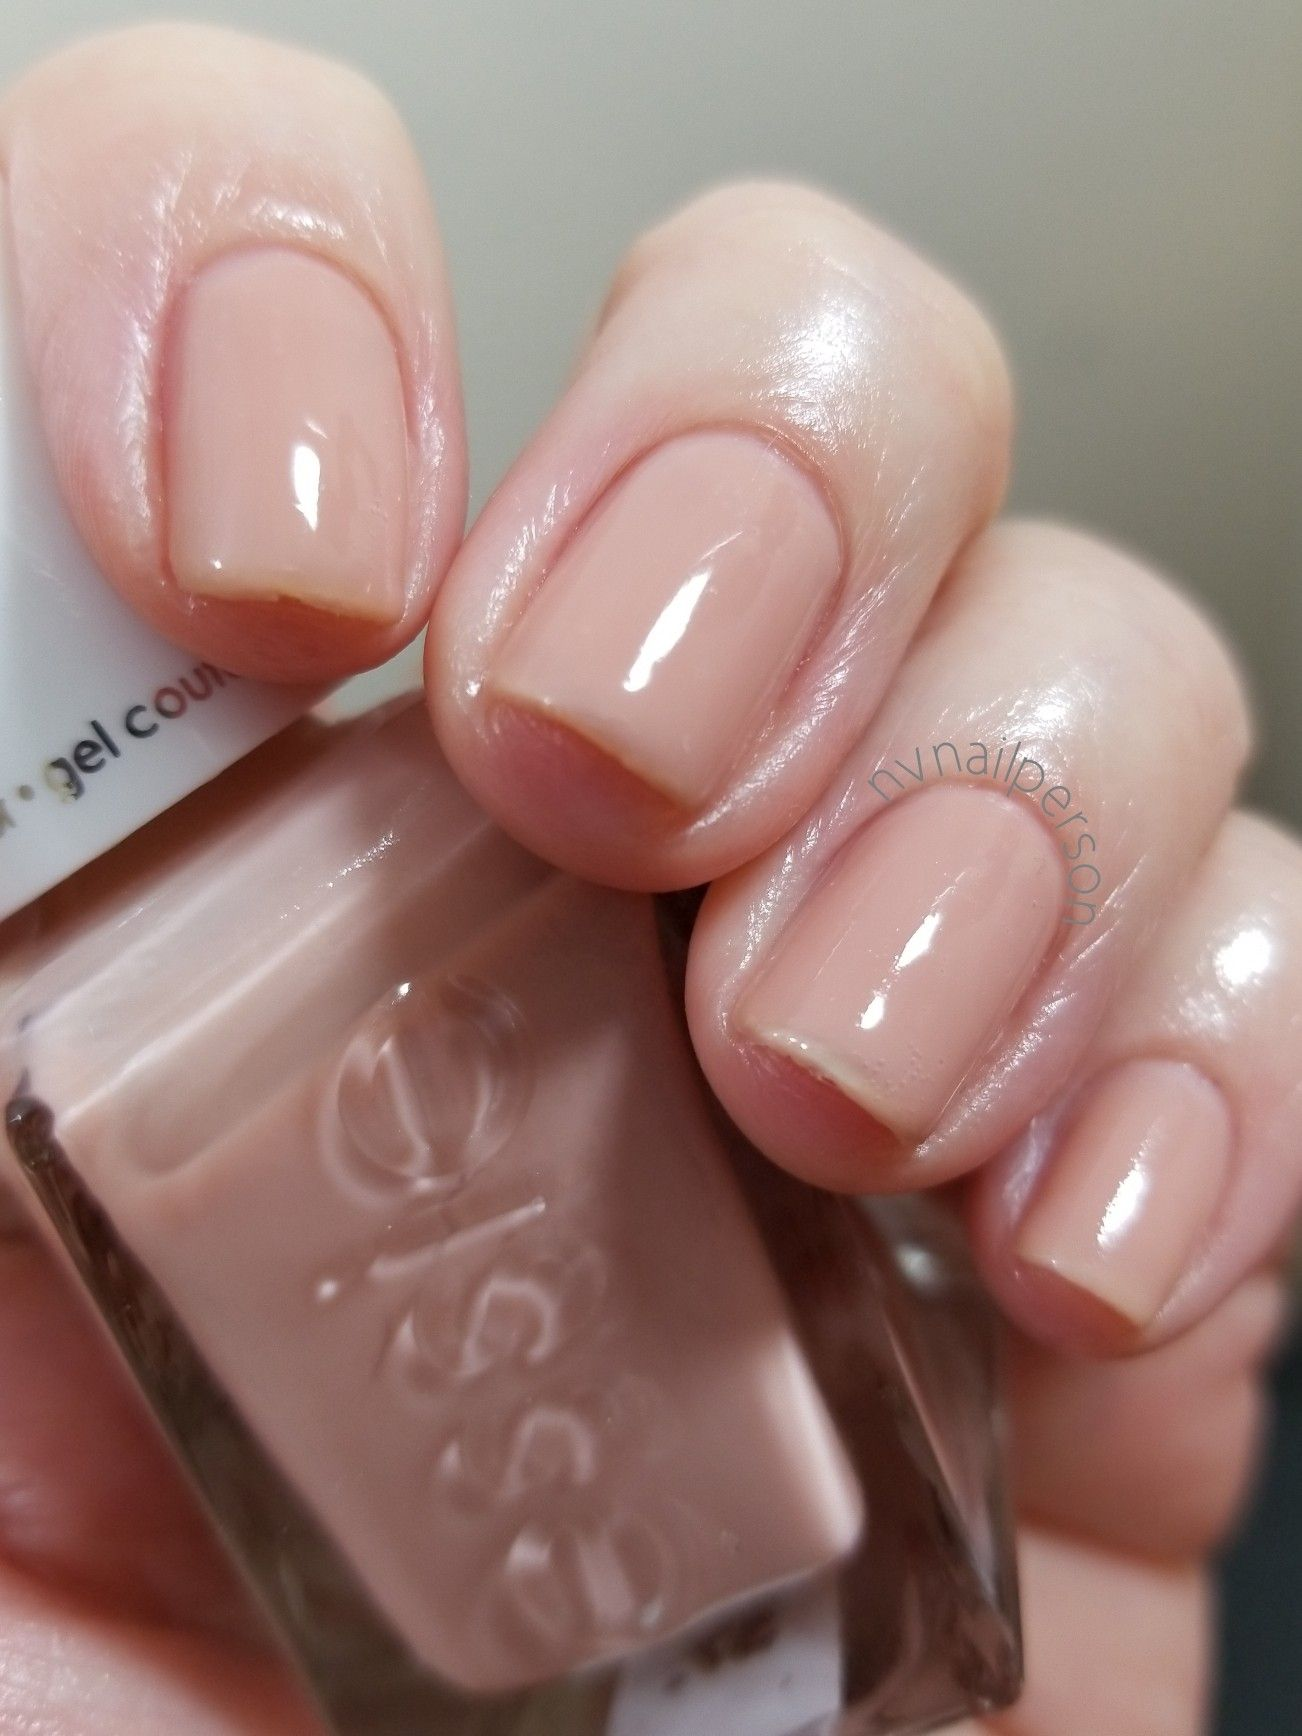 Essie Gel Couture Of Corset Sheer Silhouettes Collection 1 15 19 Essie Gel Couture Gel Couture Essie Gel